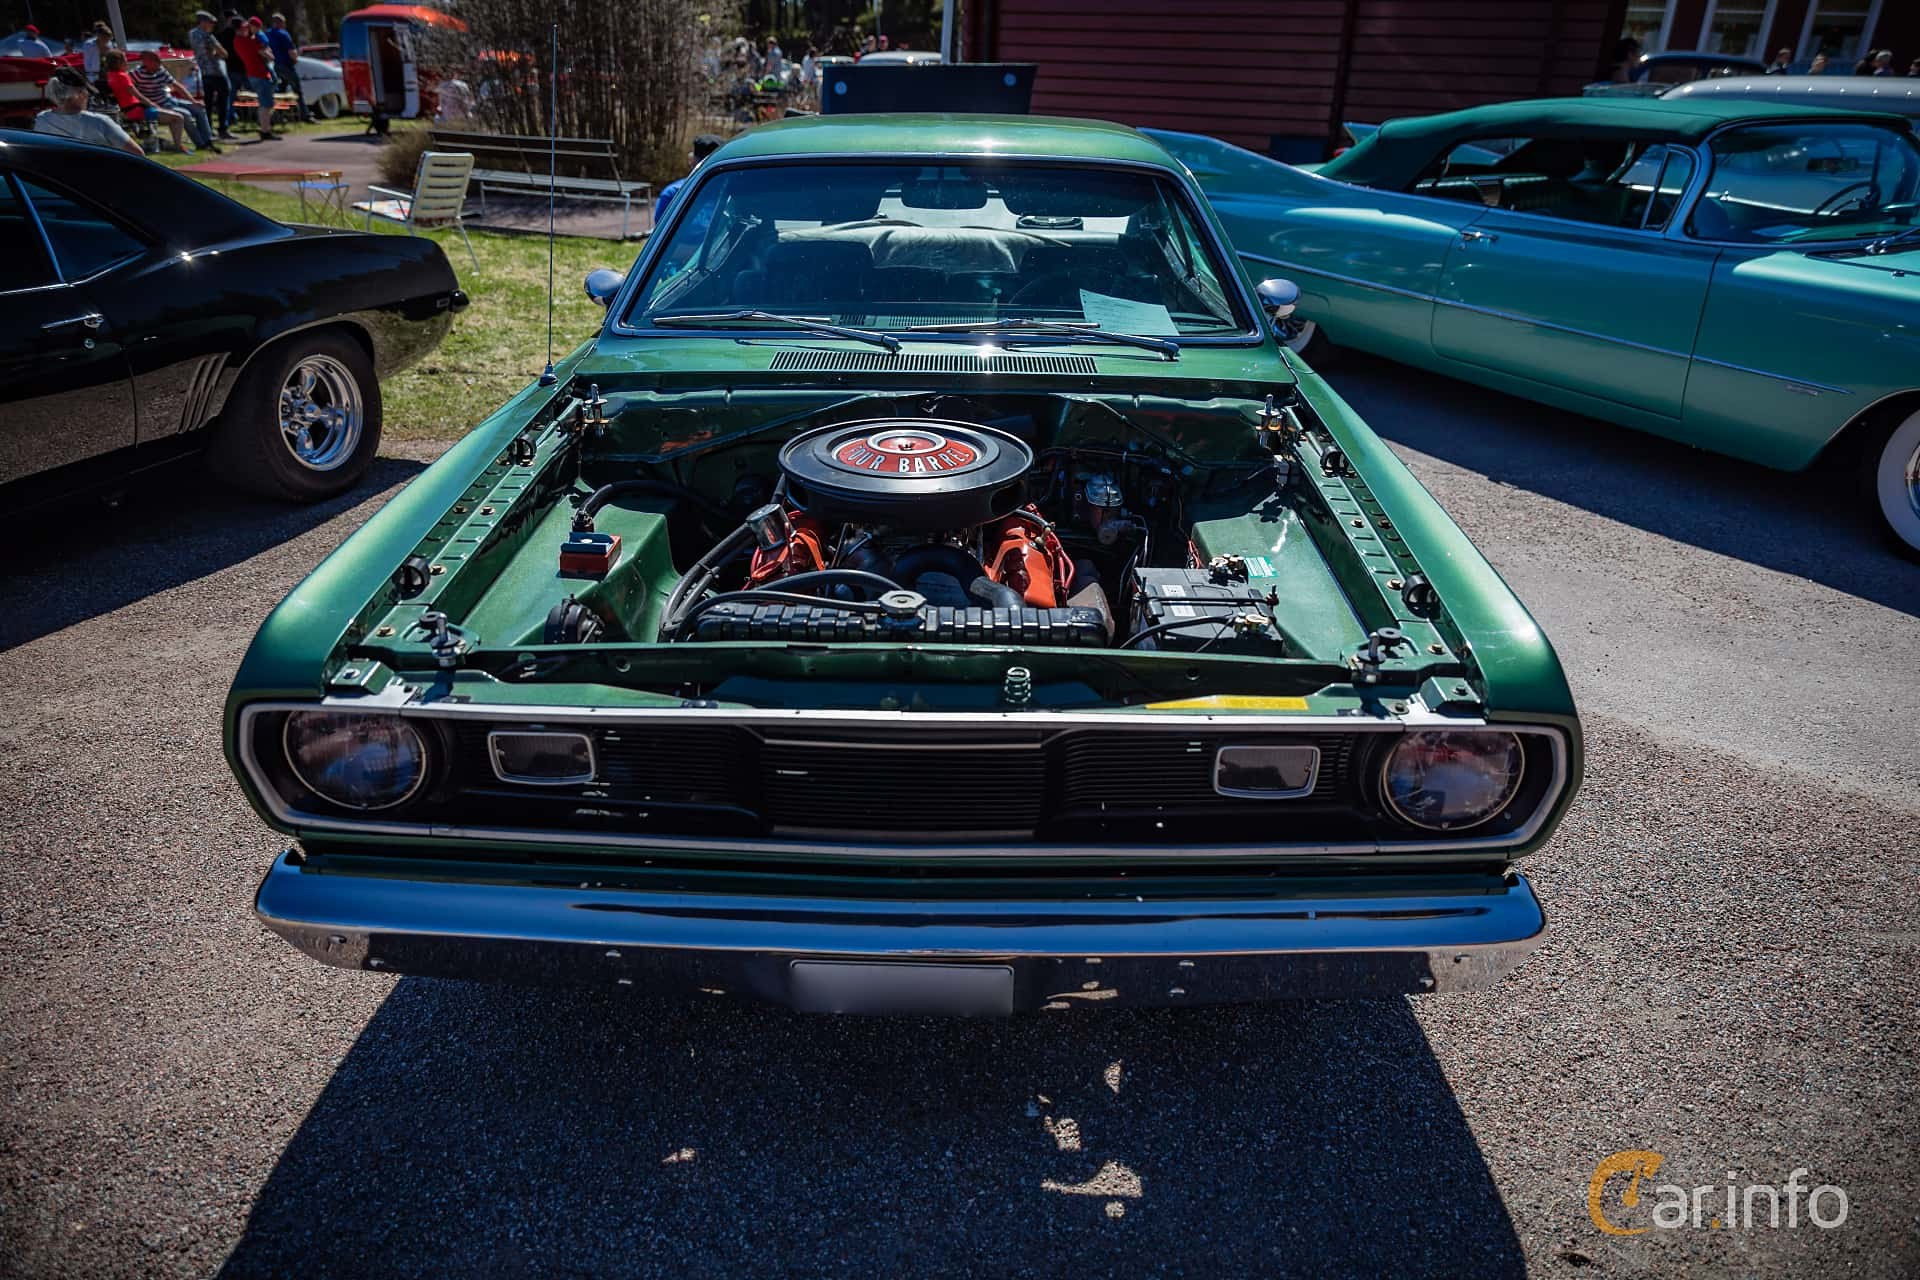 1970 Duster 340 Engine Schematic Electrical Wiring Diagram Plymouth Road Runner Bay 2 Images Of 5 6 V8 Manual 279hp By Wiper